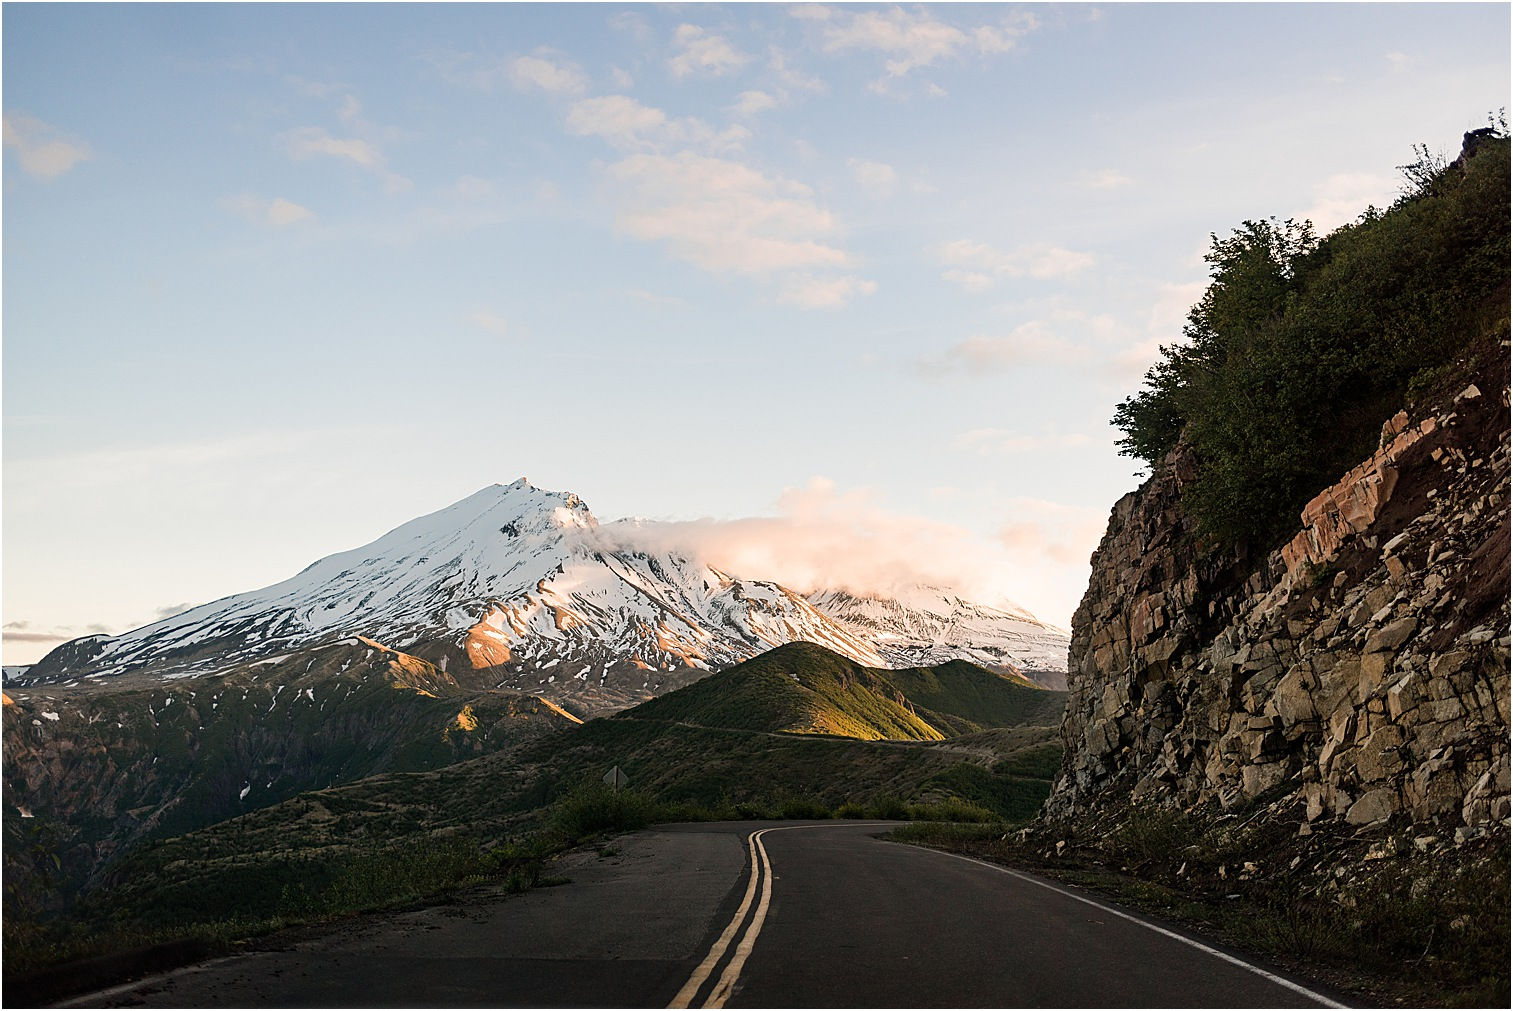 Road to Mt. St Helens at sunset. Image by Forthright Photo, wedding & elopement photographers.